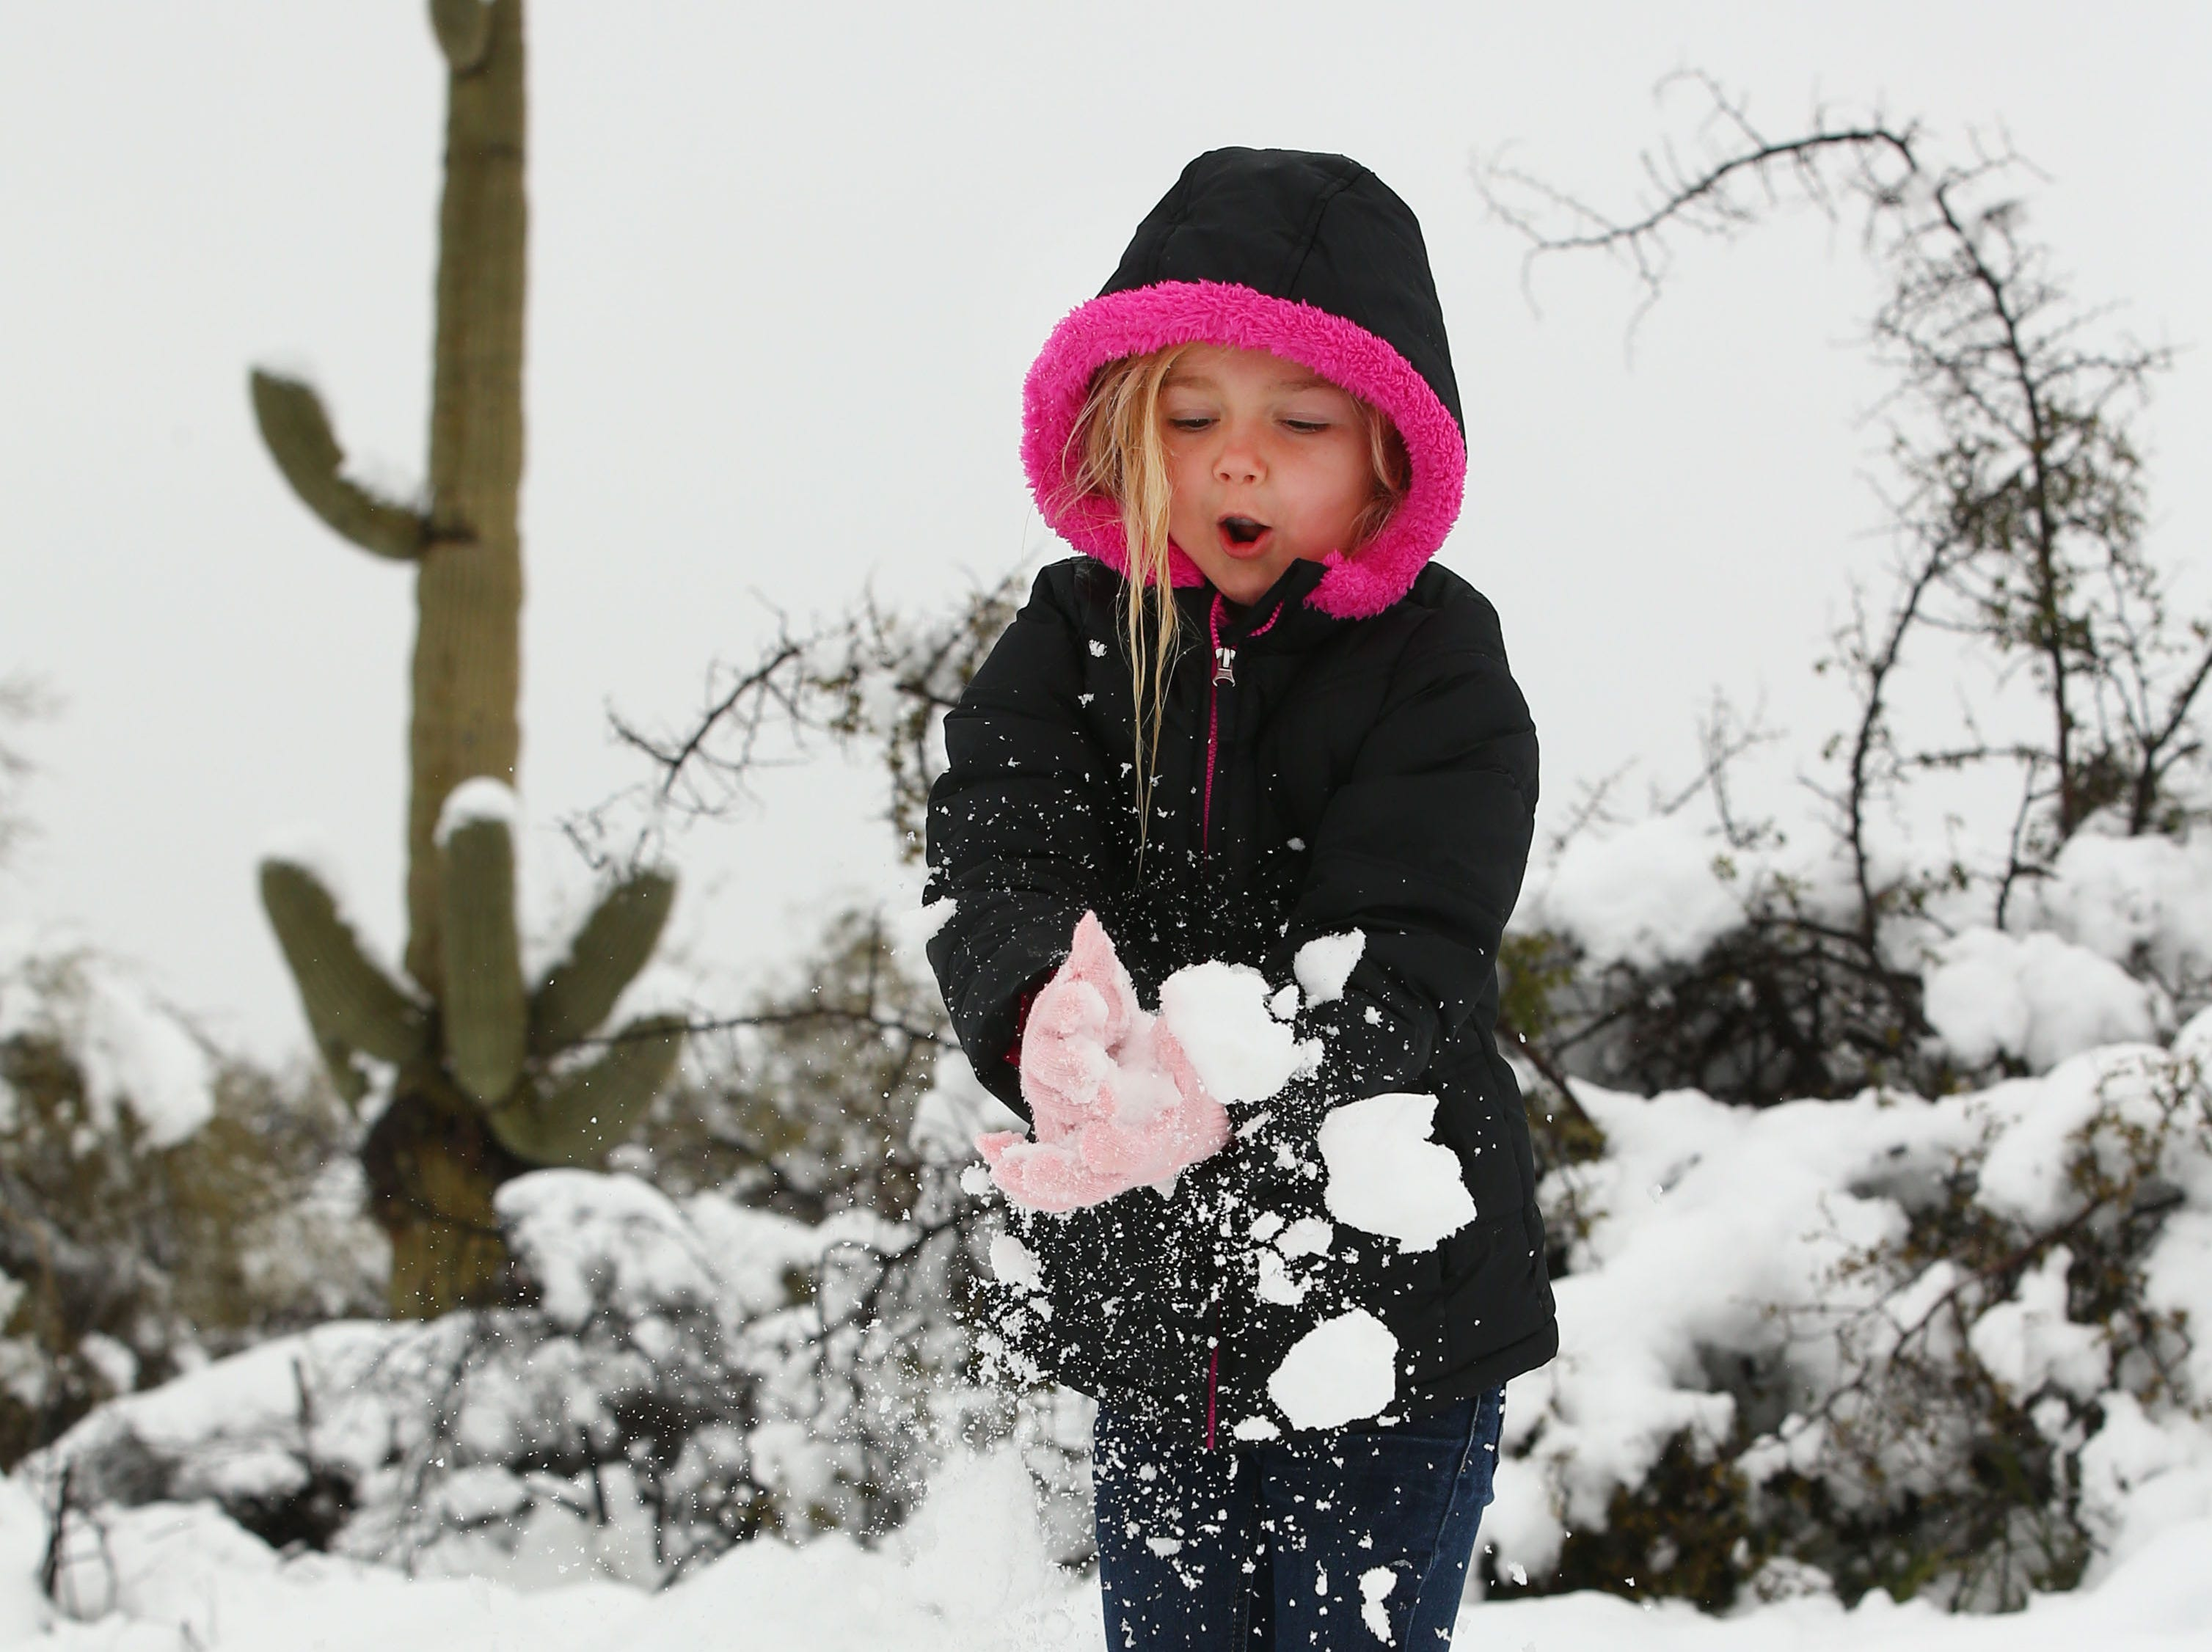 Ashlee Martin, age 5 has gets hit with snowball with a saguro cactus in the background after a winter storm brought six inches of snow on Feb. 22, 2019 in Scottsdale, Ariz.